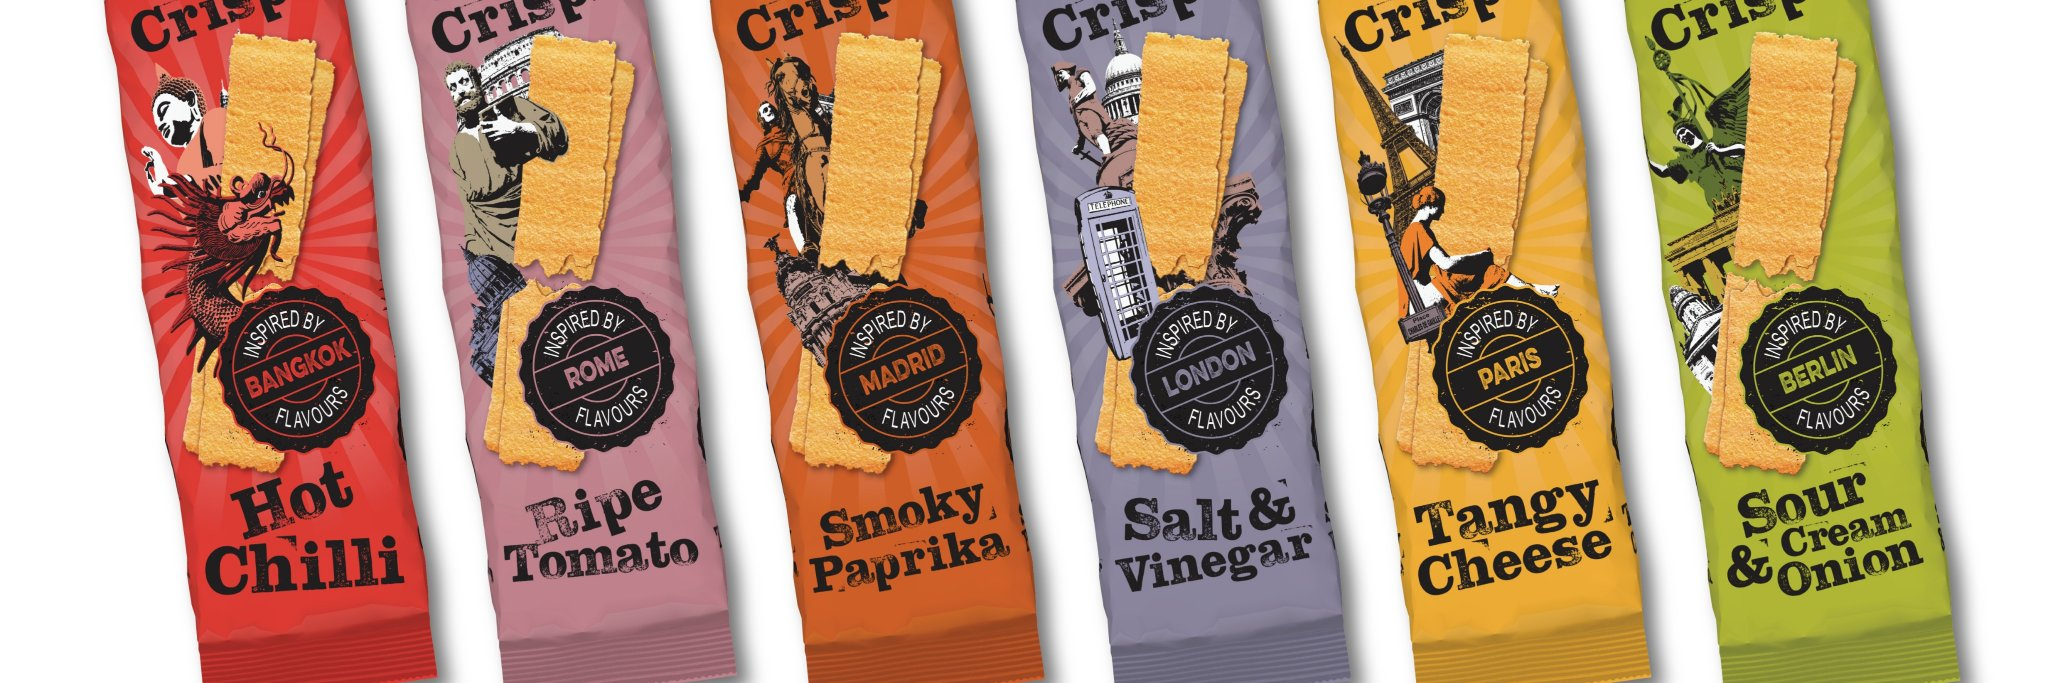 WIN SOME CRISPS! We're doing another #giveaway so someone can try our full range of long chips inspired by capital… https://t.co/50AK6Wmcka